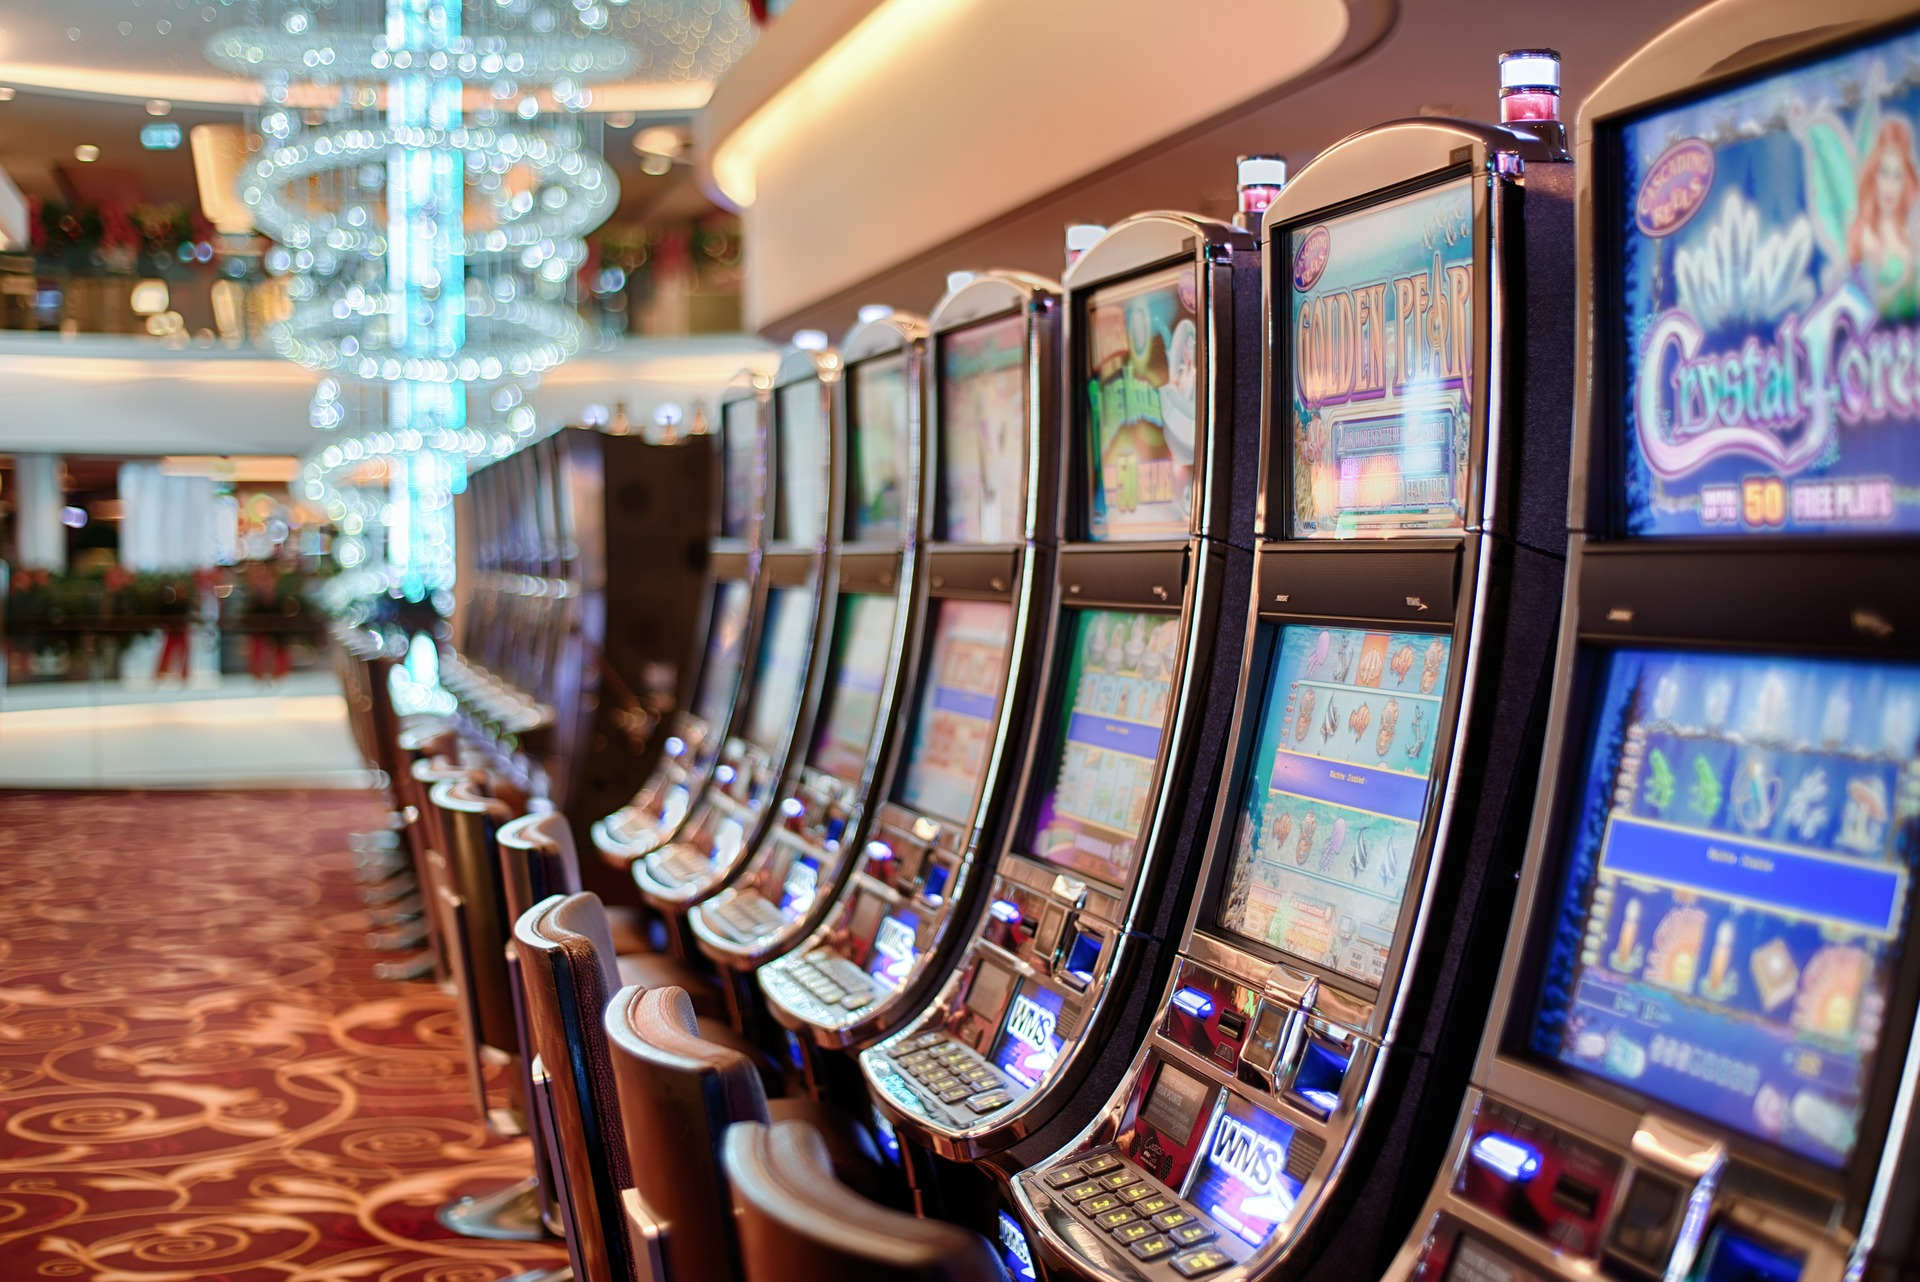 Slot machines. Credit: Pixabay/stokpic